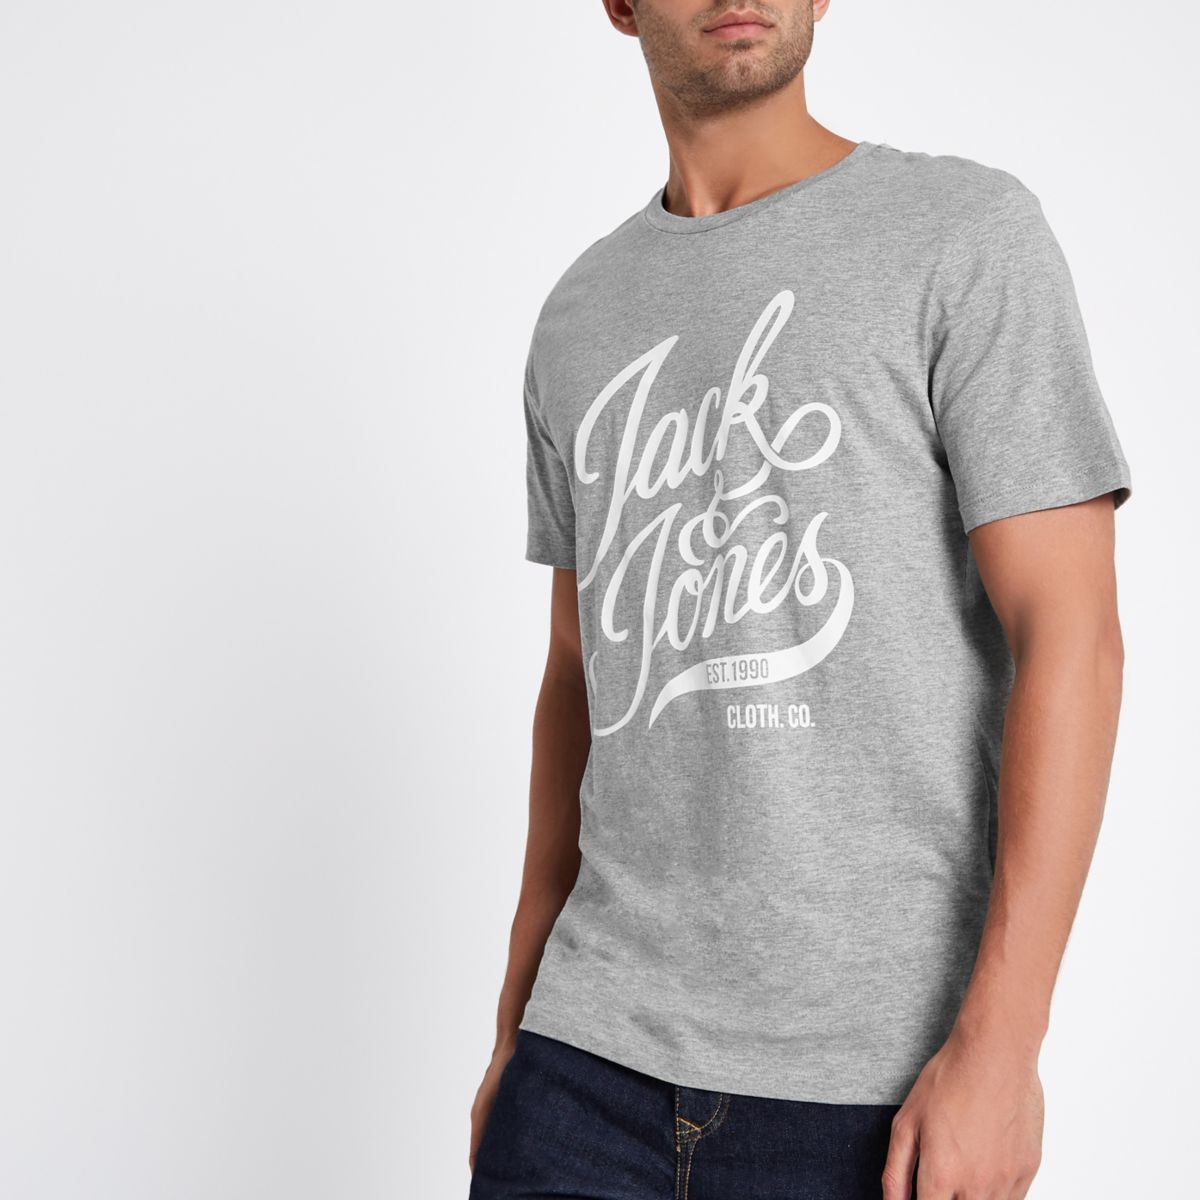 print amp; Jack shirt grey T crew Jones neck wt66d1q